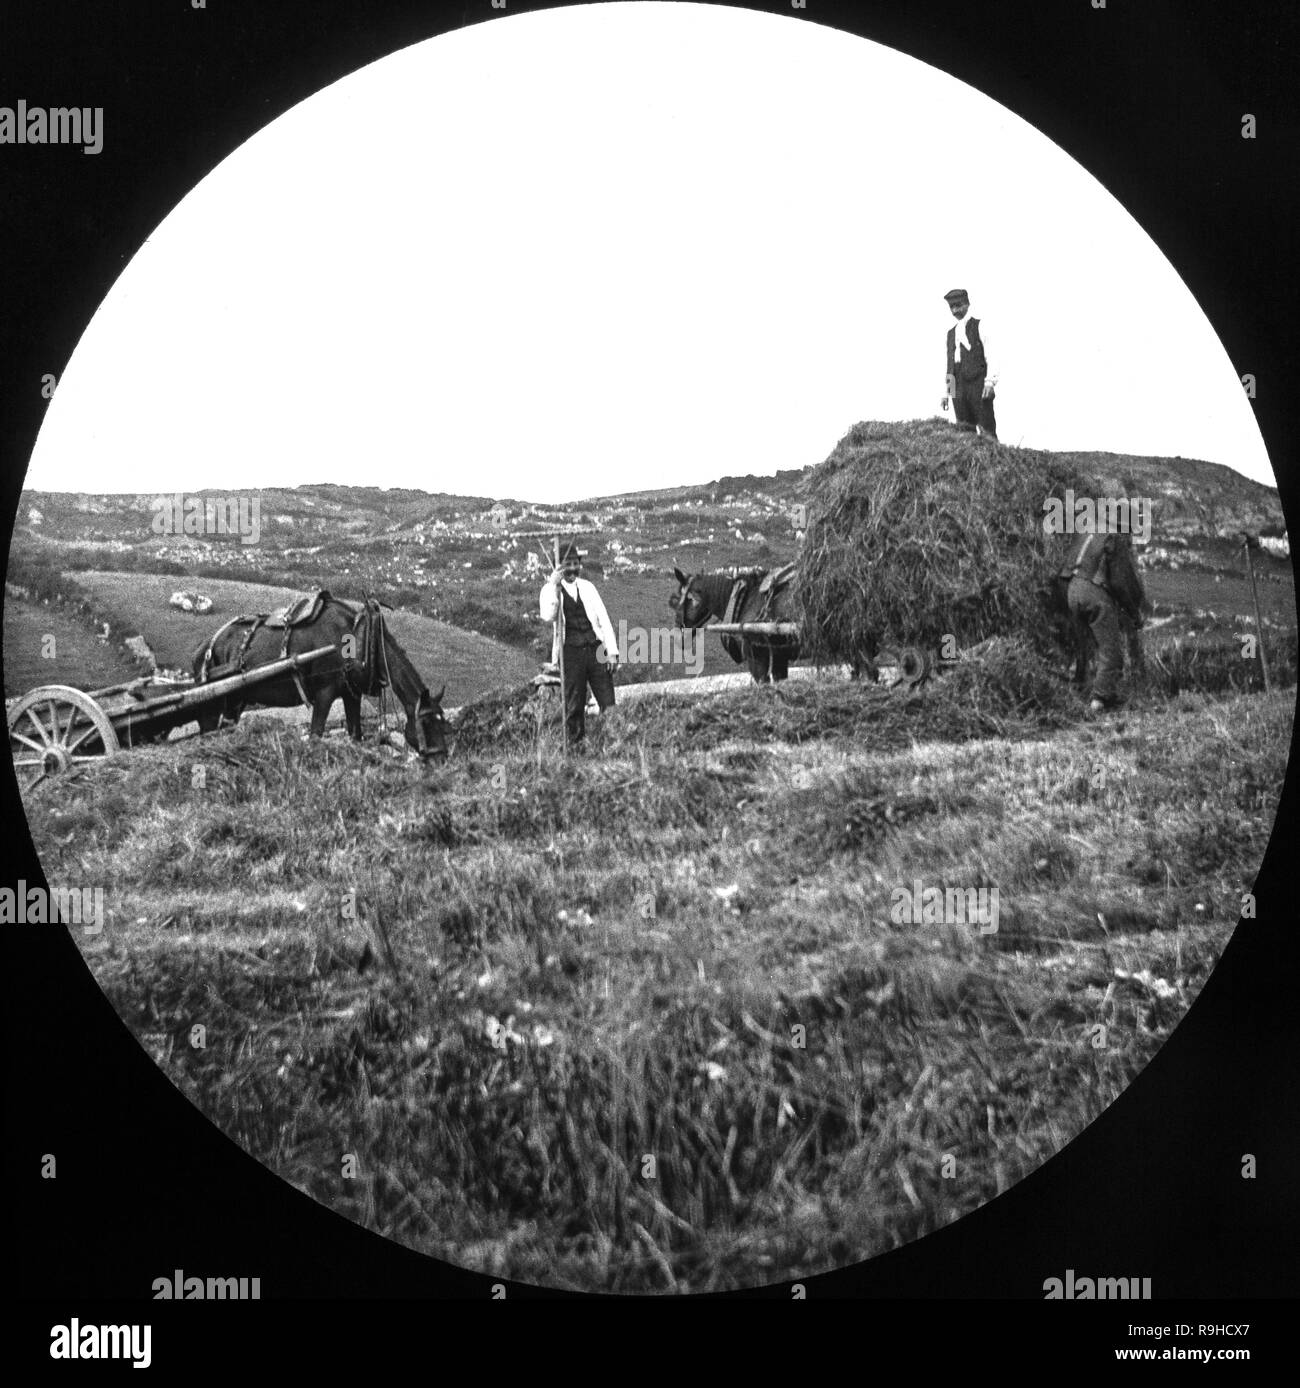 A late Victorian black and white photograph showing hay being gathered in a farm in England. Image shows three people working, loading the hay on to two horse drawn carts. Stock Photo